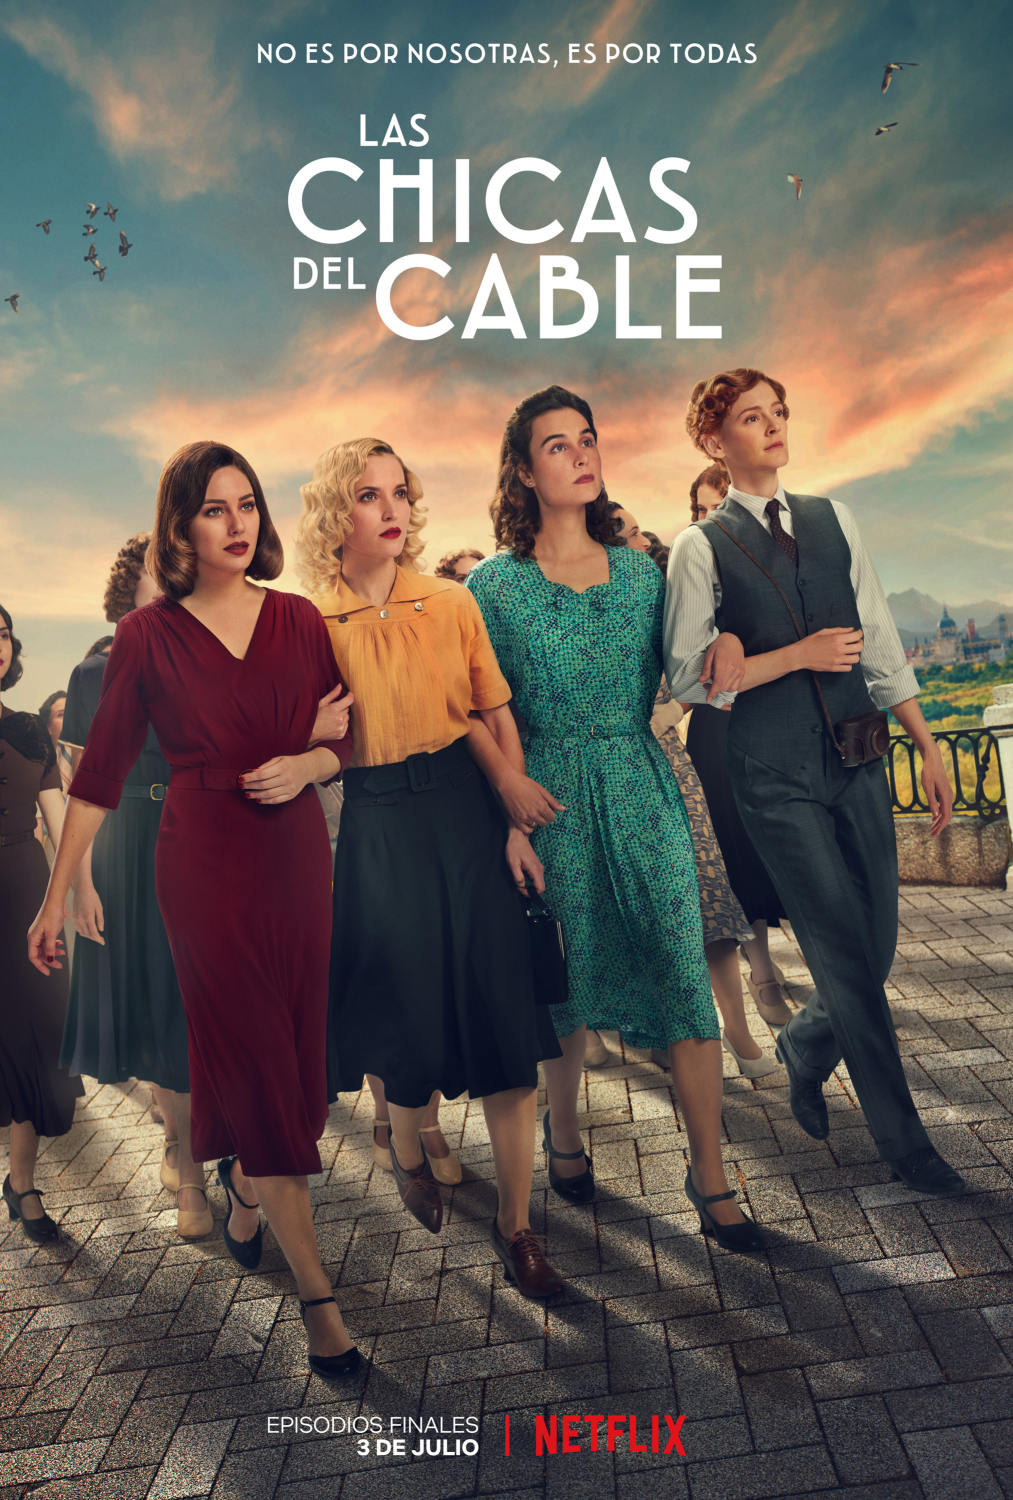 Las chicas del cable Temporada 5 Castellano 720p